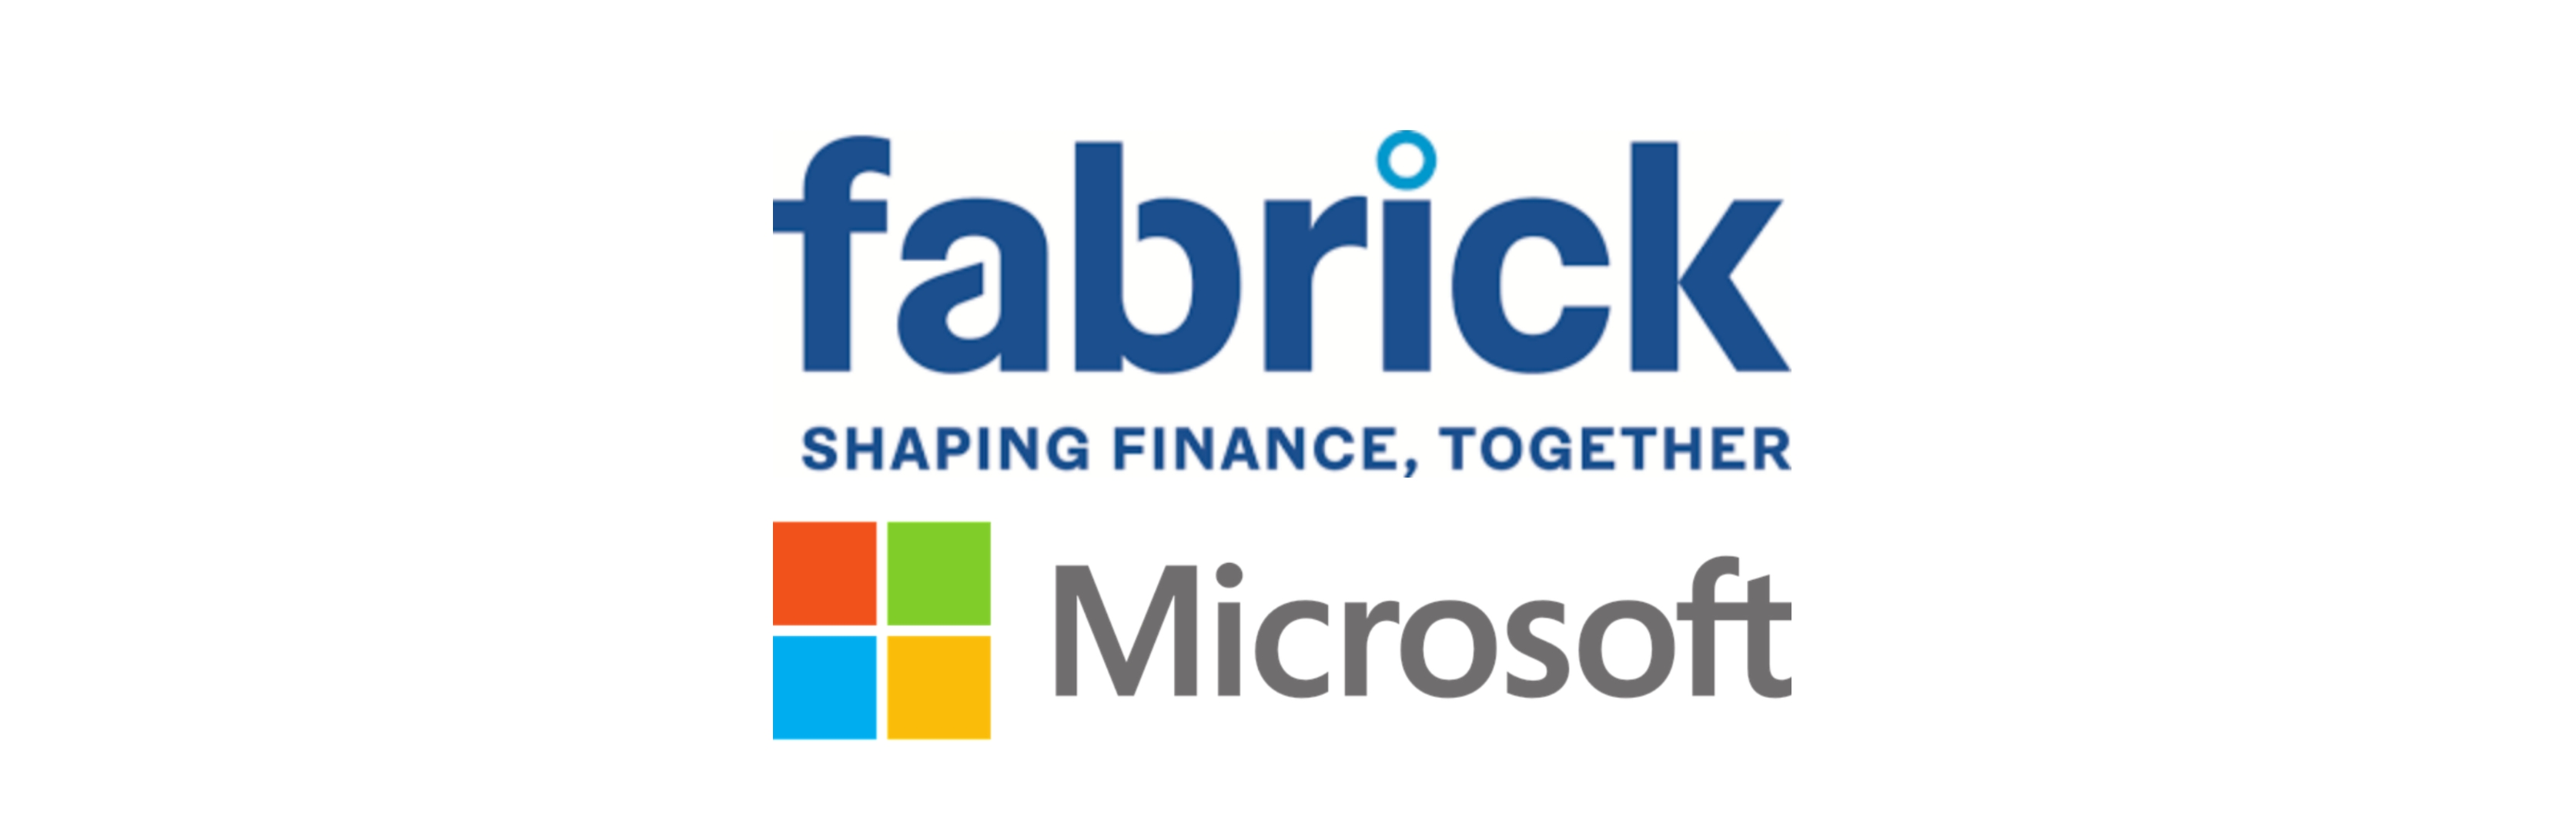 Fabrick and Microsoft Partner to Expand Digital Transformation Opportunities for Companies and Accelerate Open Finance